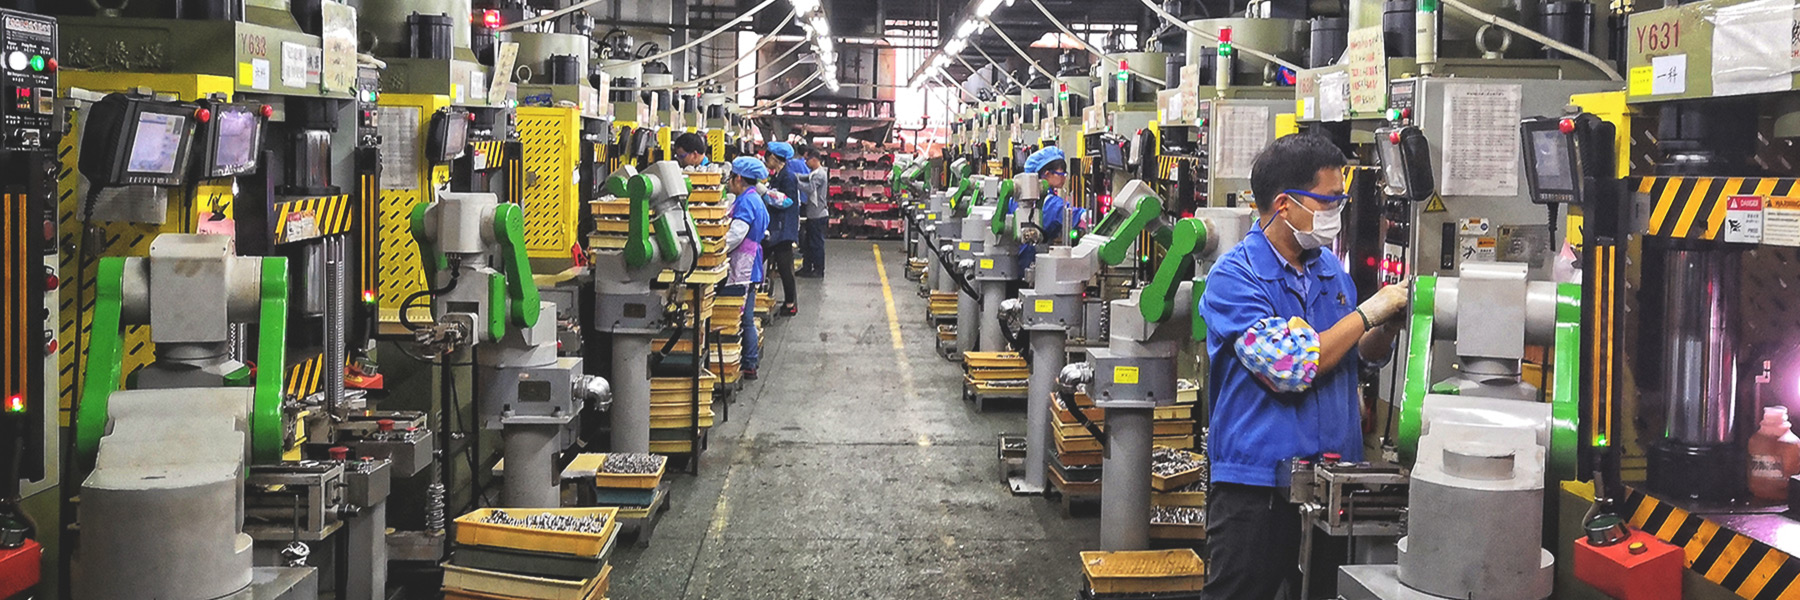 Fossil Group Factory workers in Hong Kong SAR